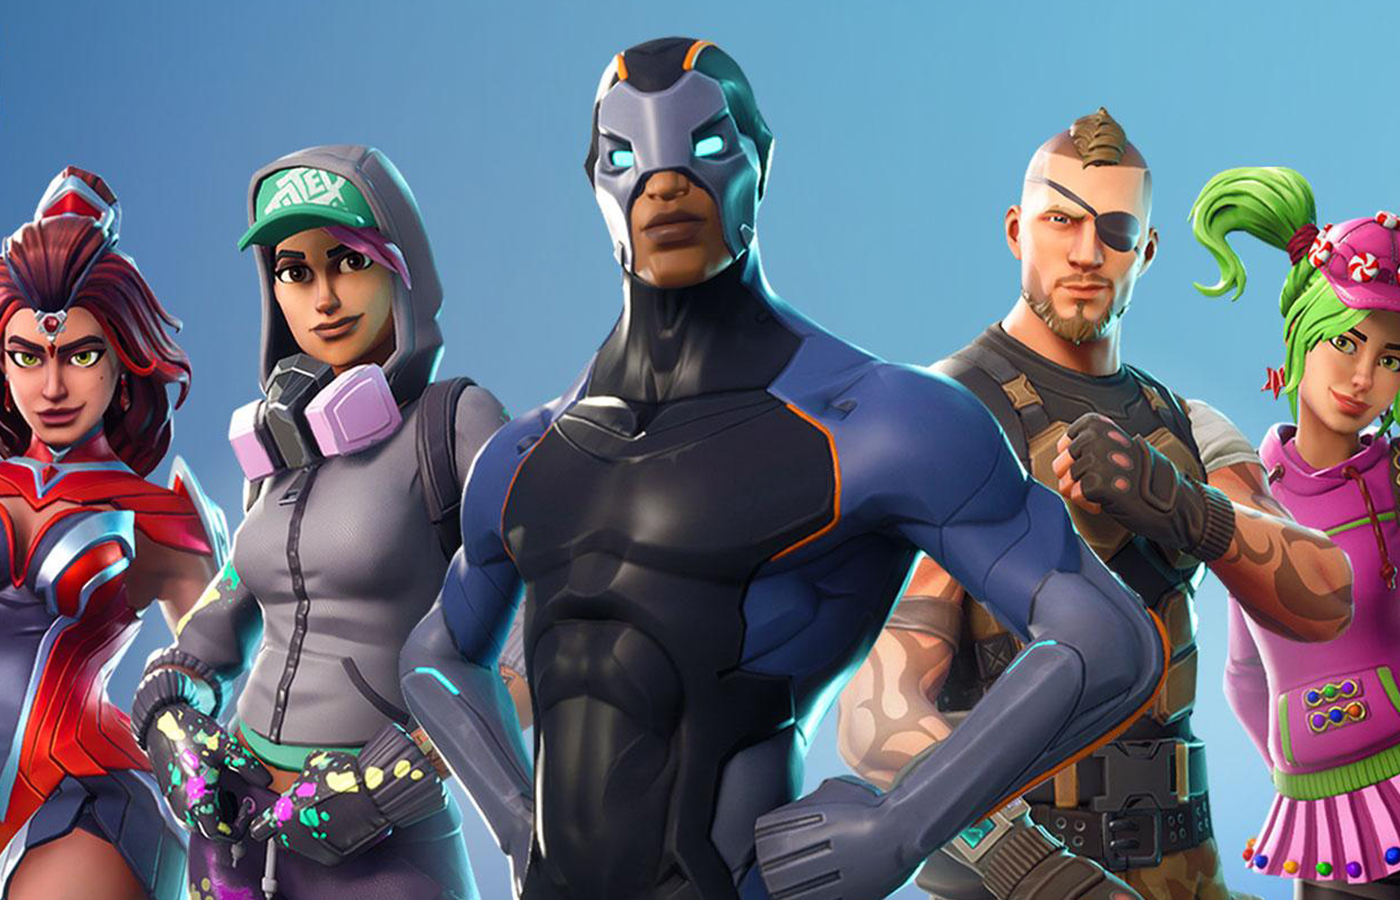 Watch Out for These Fortnite Scams | Experian